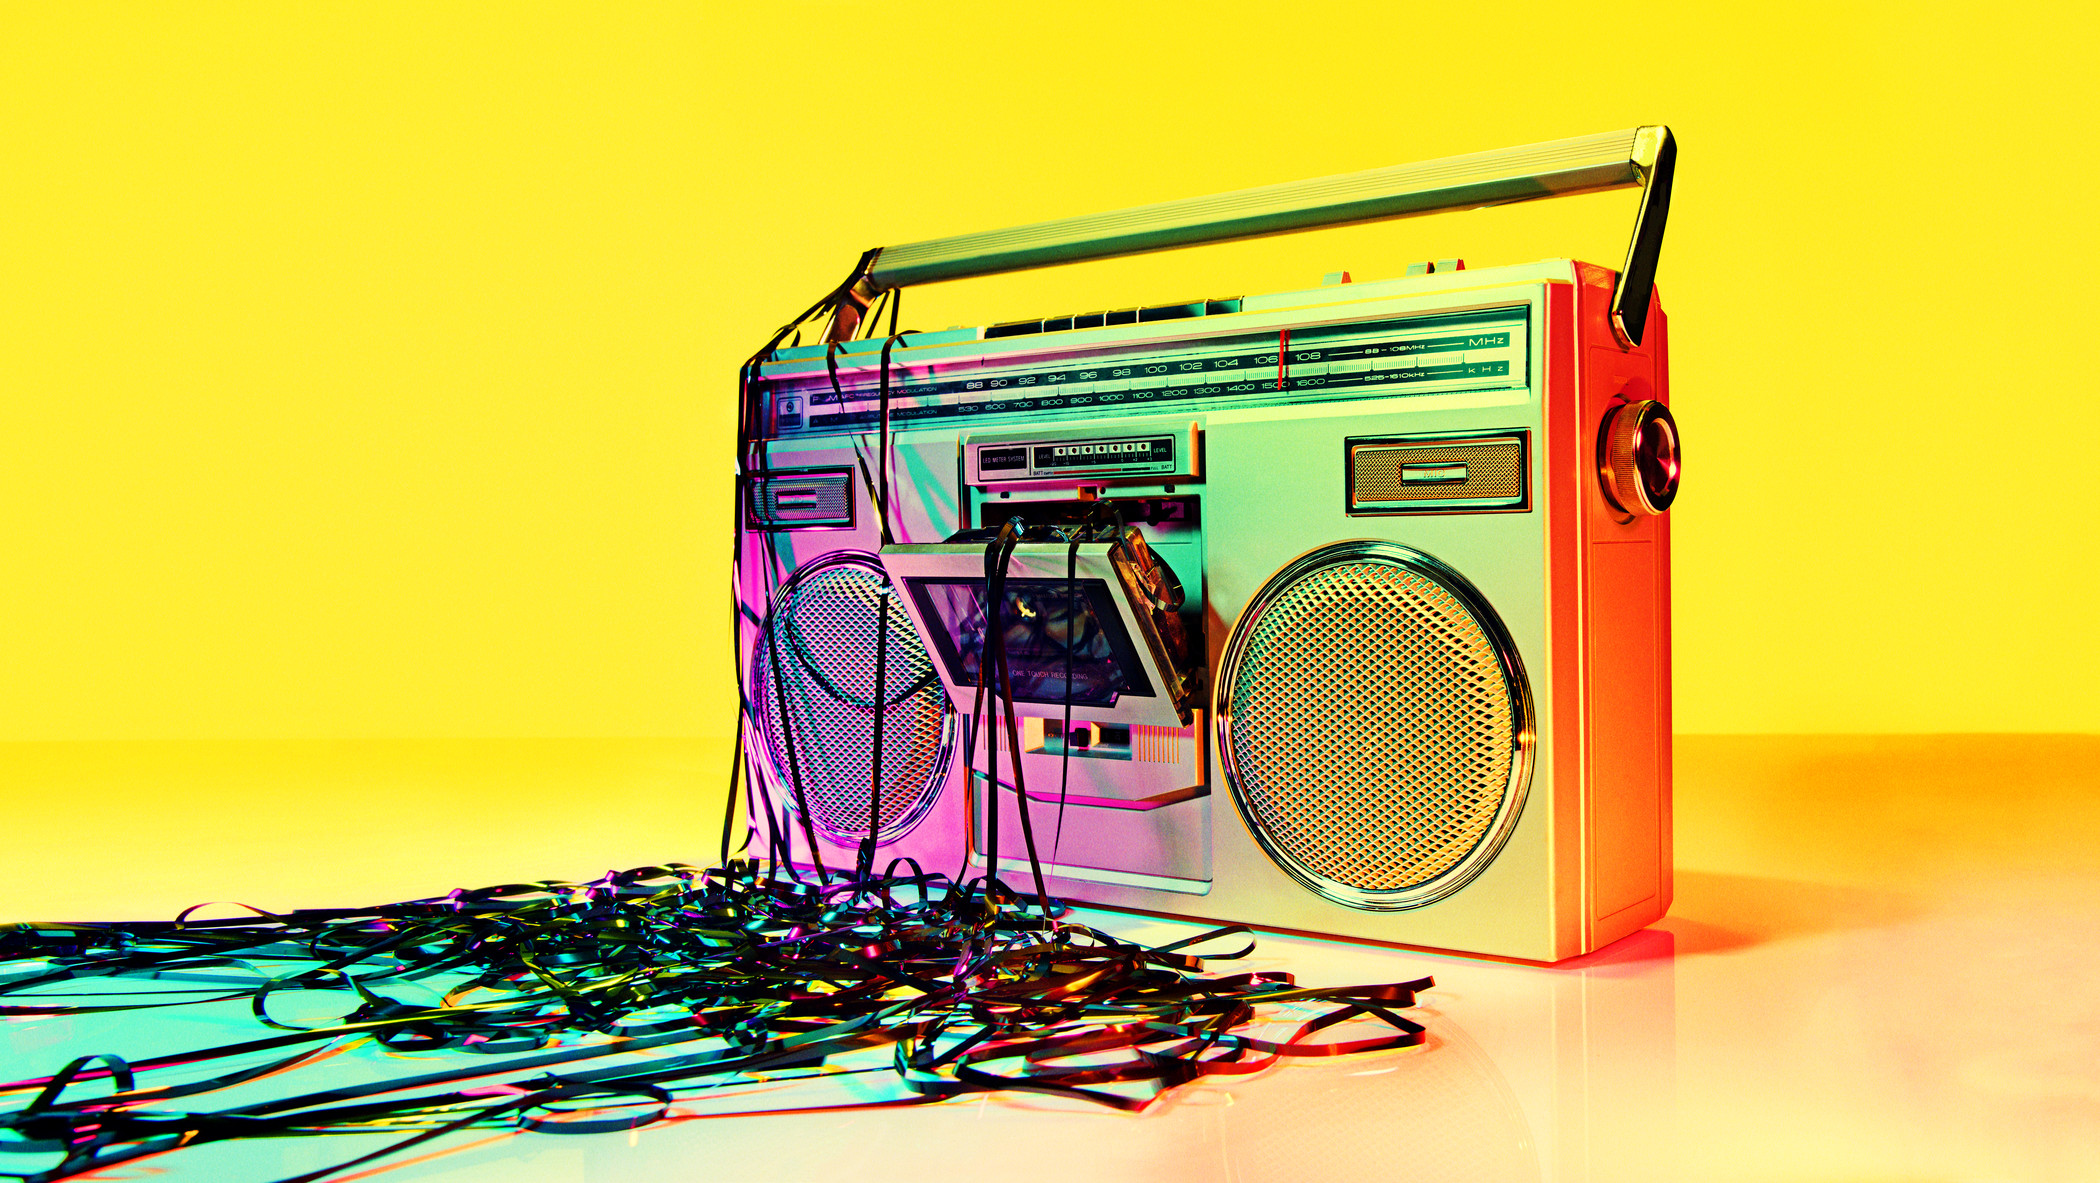 whode-195461-music-boombox-with-tape-cassette-film